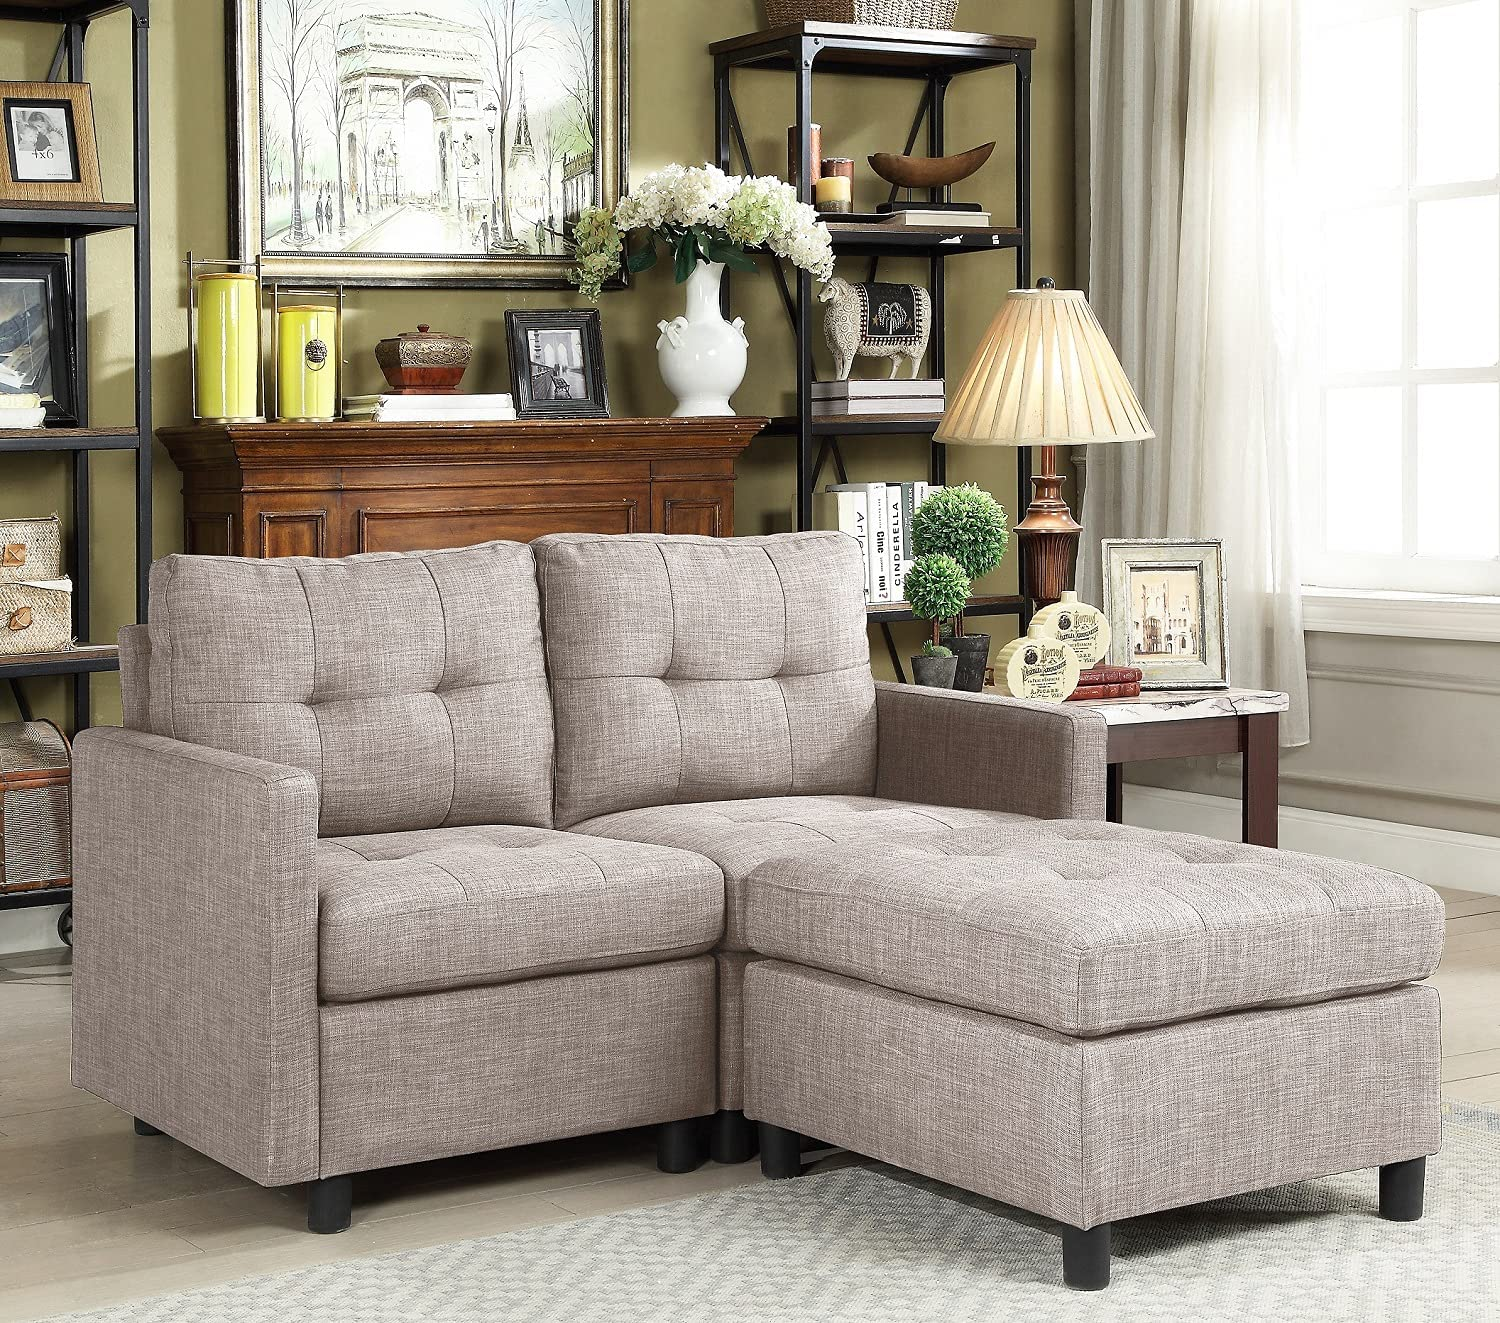 PAYEEL Sectional Sofa Set L-Shaped Couch Reversible Modular 52 inch Love Seats Futon Couch Furniture with Reversible Ottoman for Small Space Living Room (Light Gray).